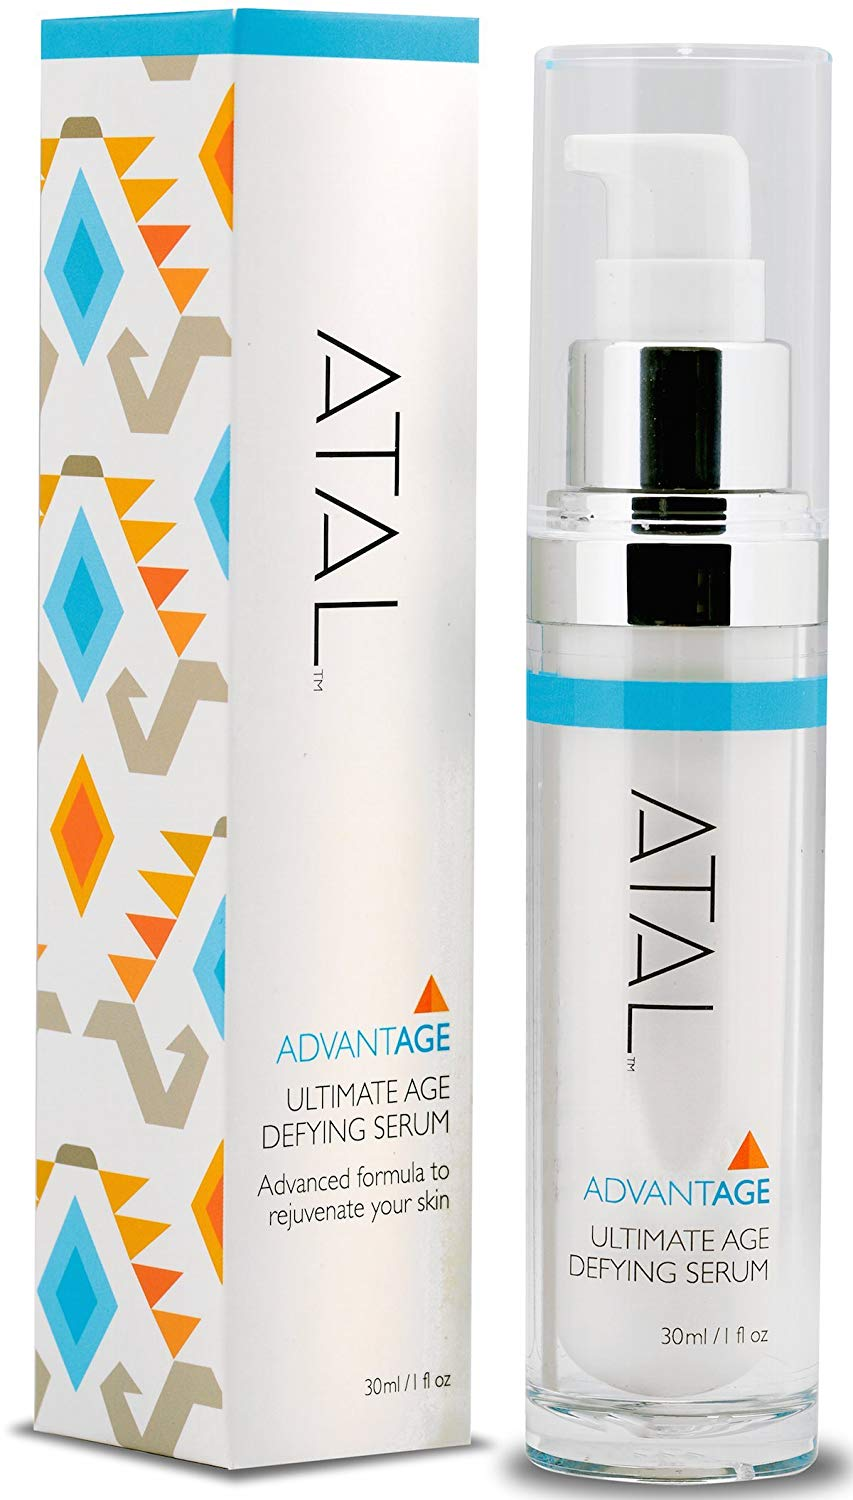 ATAL Advantage Ultimate Age Defying Hyaluronic Acid Serum